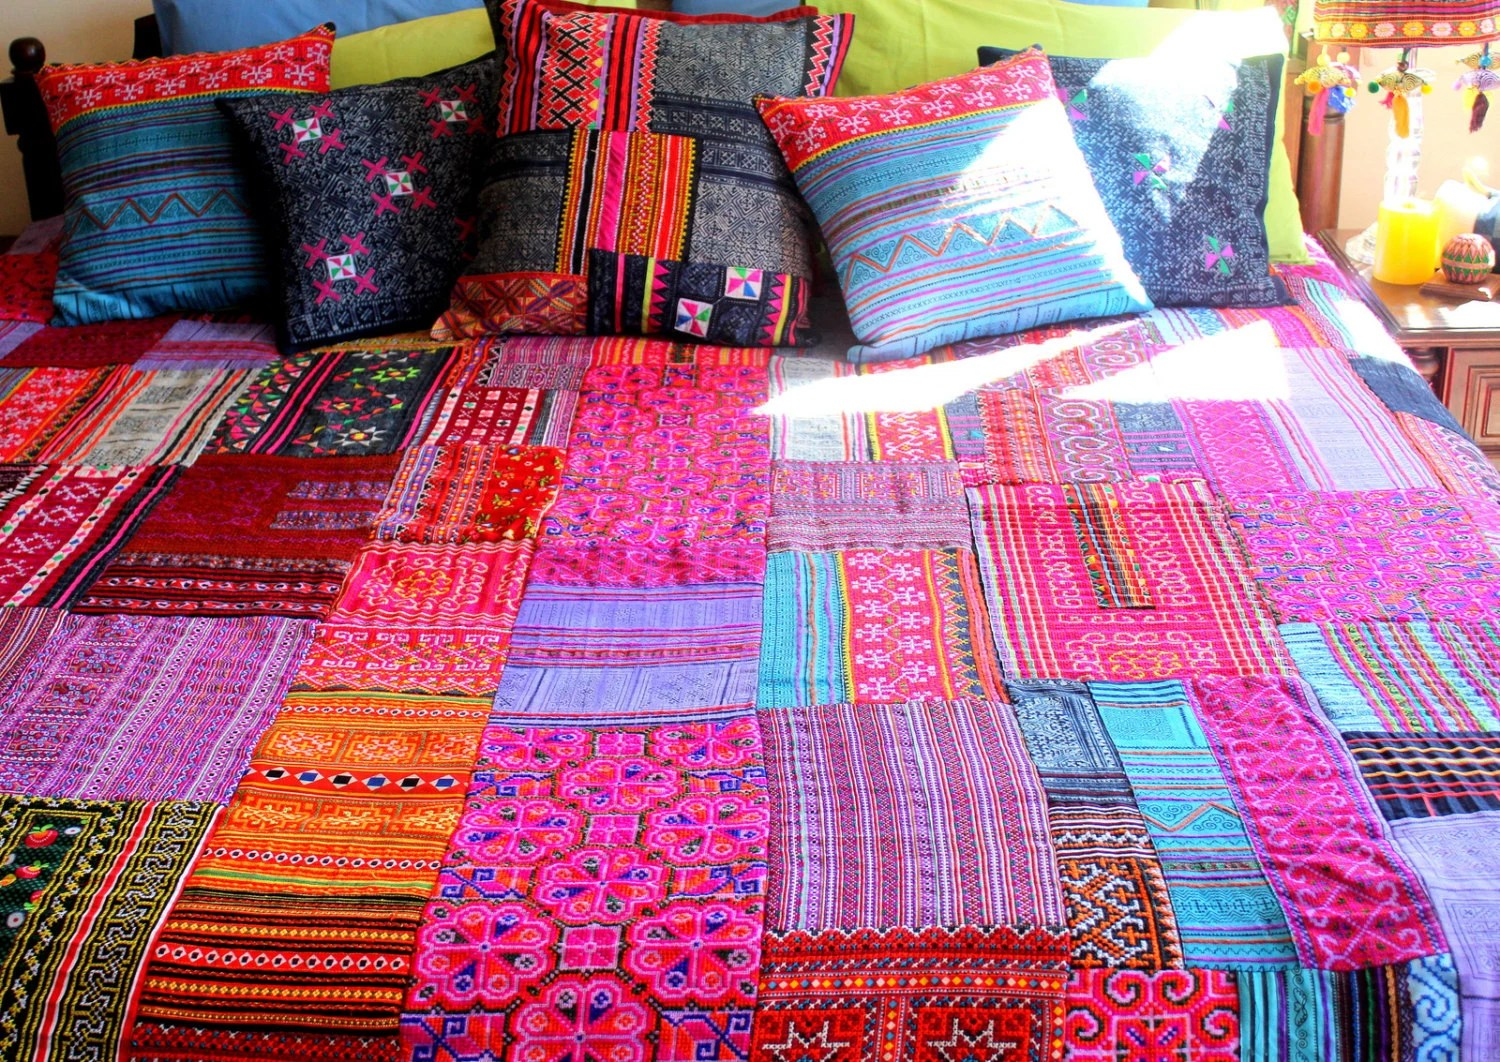 Patchwork Duvet Cover Hmong Batik Embroidery by